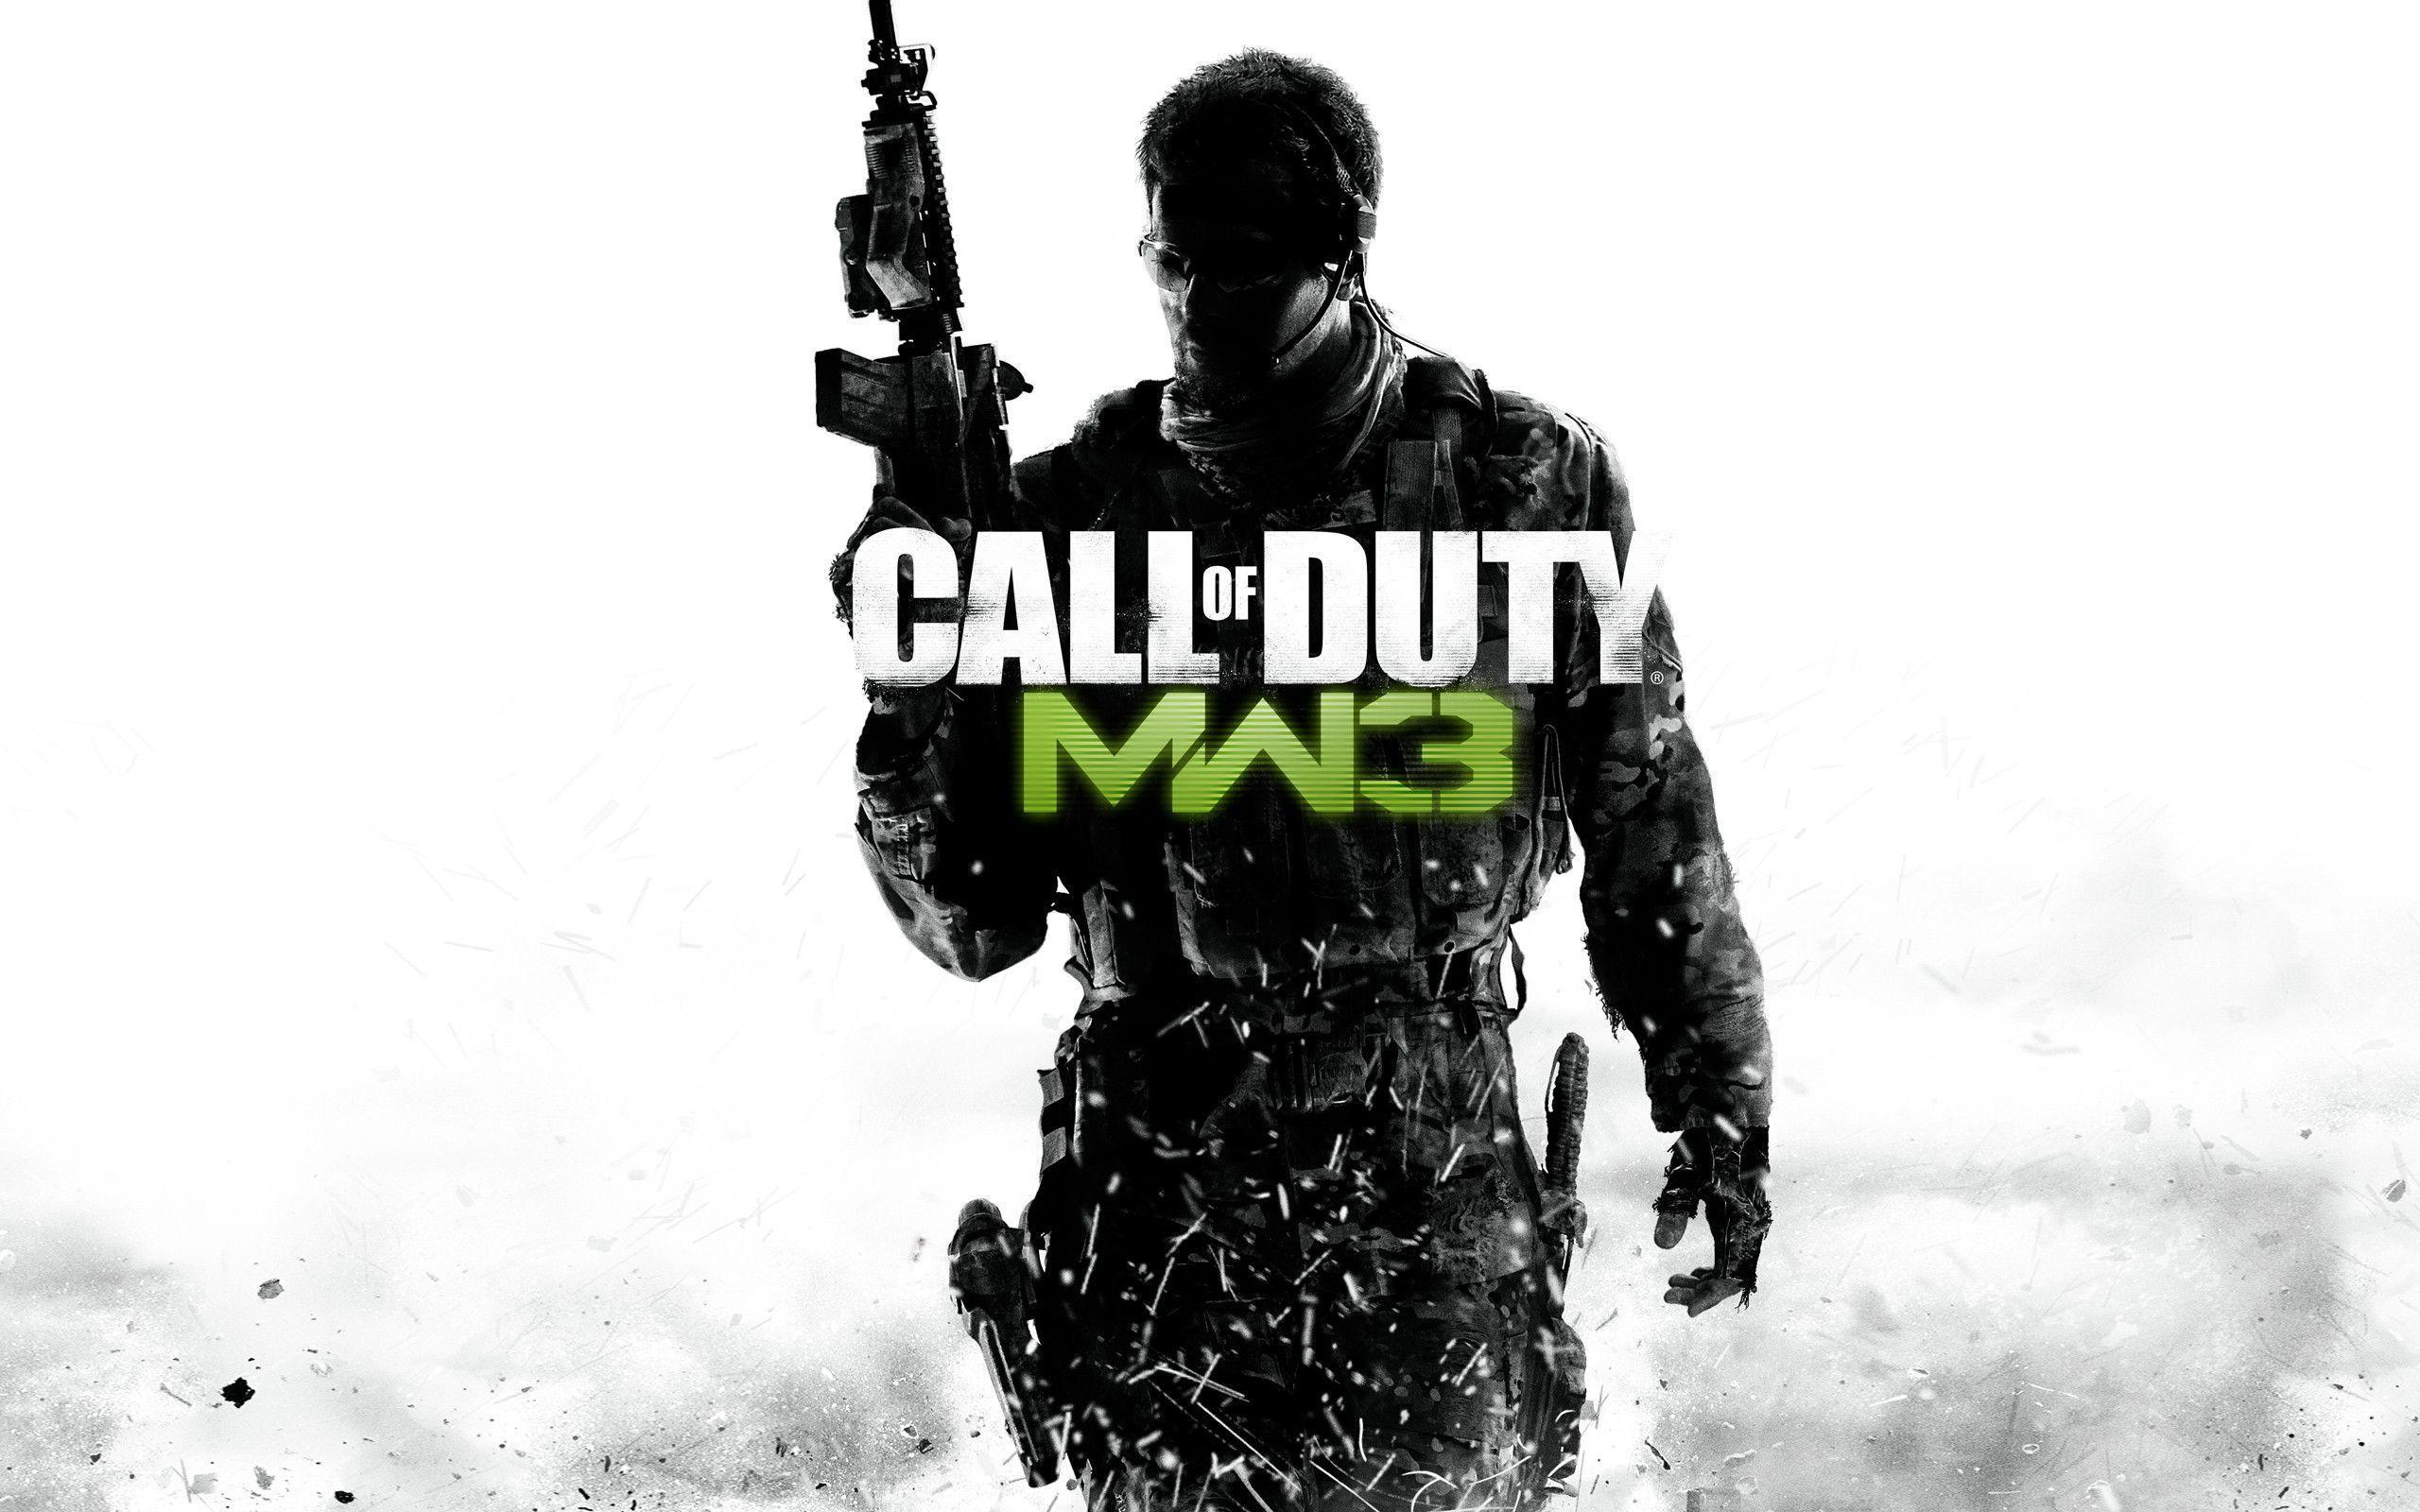 Call Of Duty Modern Warfare 3 Wallpapers | HD Wallpapers